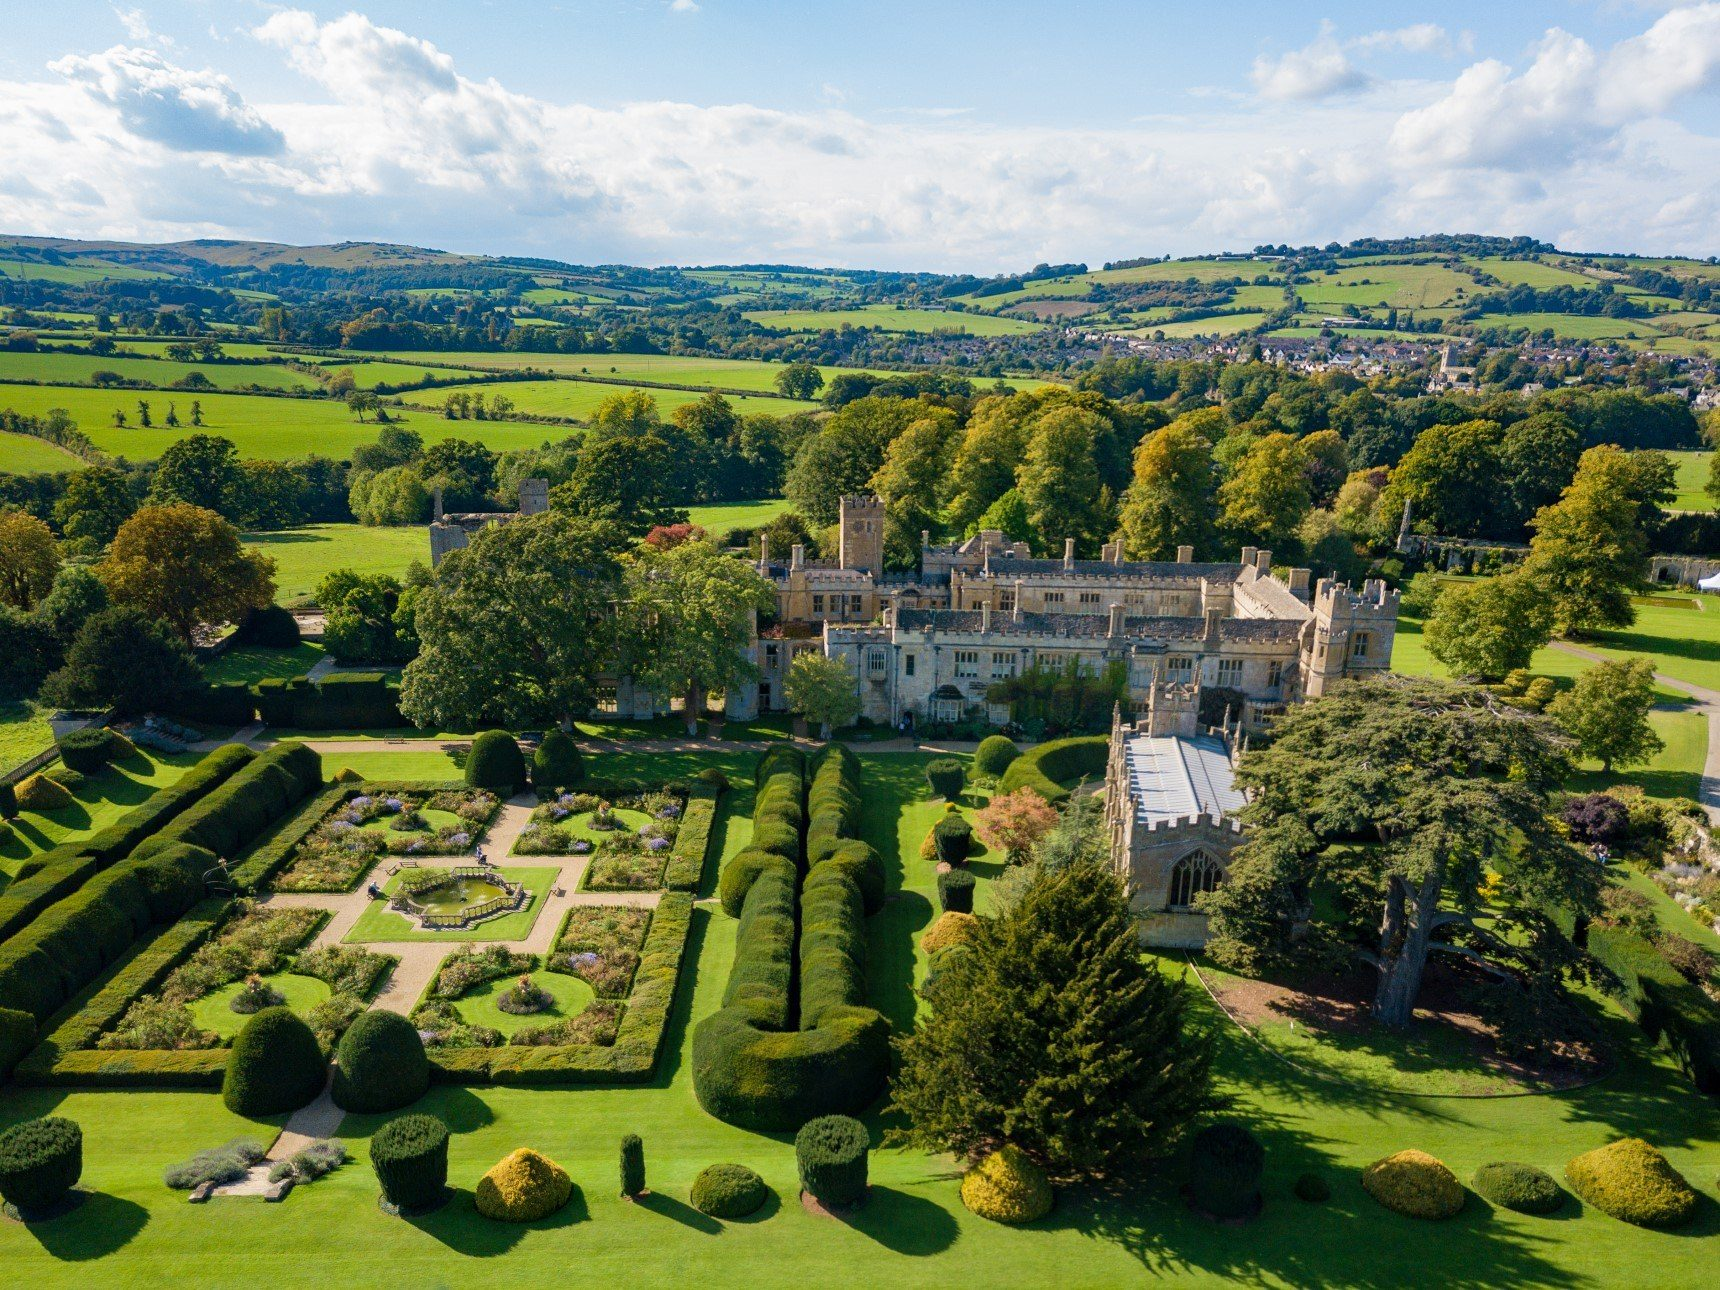 Aerial view of Sudeley Castle, gardens and surrounding estate